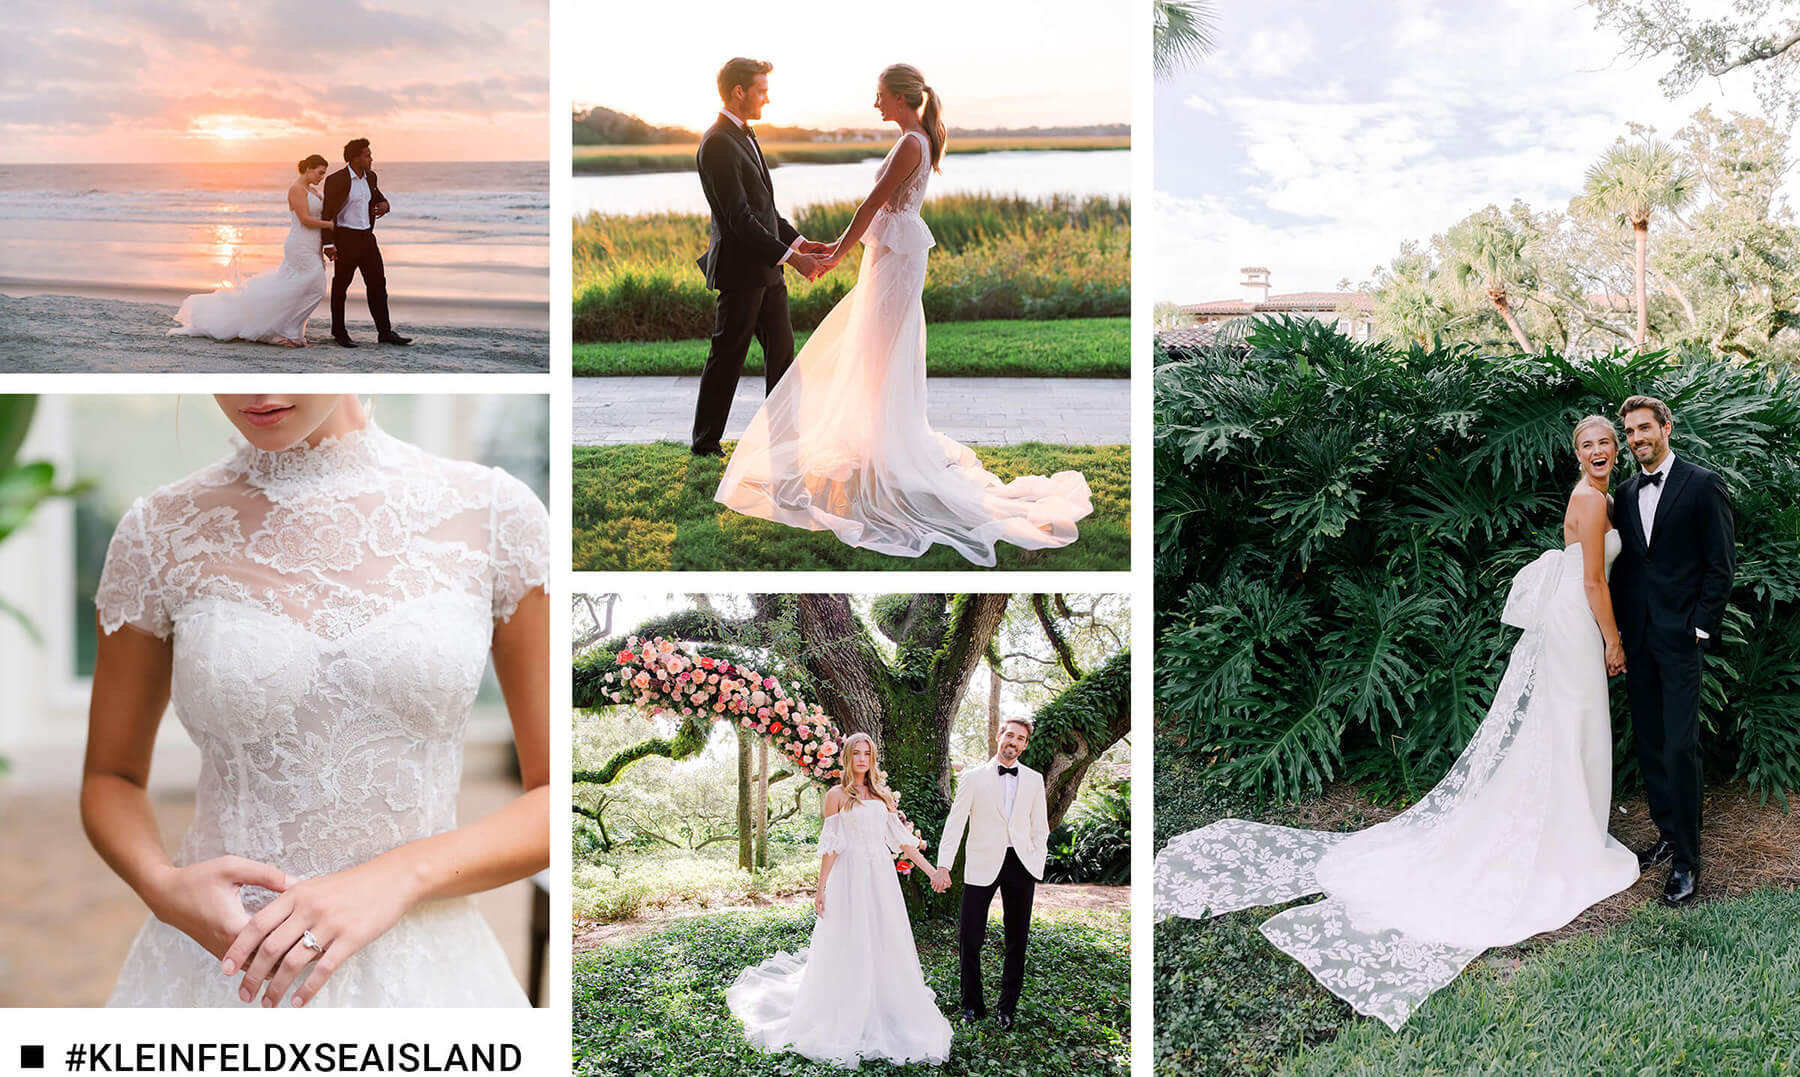 Abiti Da Sposa Kleinfeld Sito Ufficiale.Kleinfeld Bridal The Largest Selection Of Wedding Dresses In The